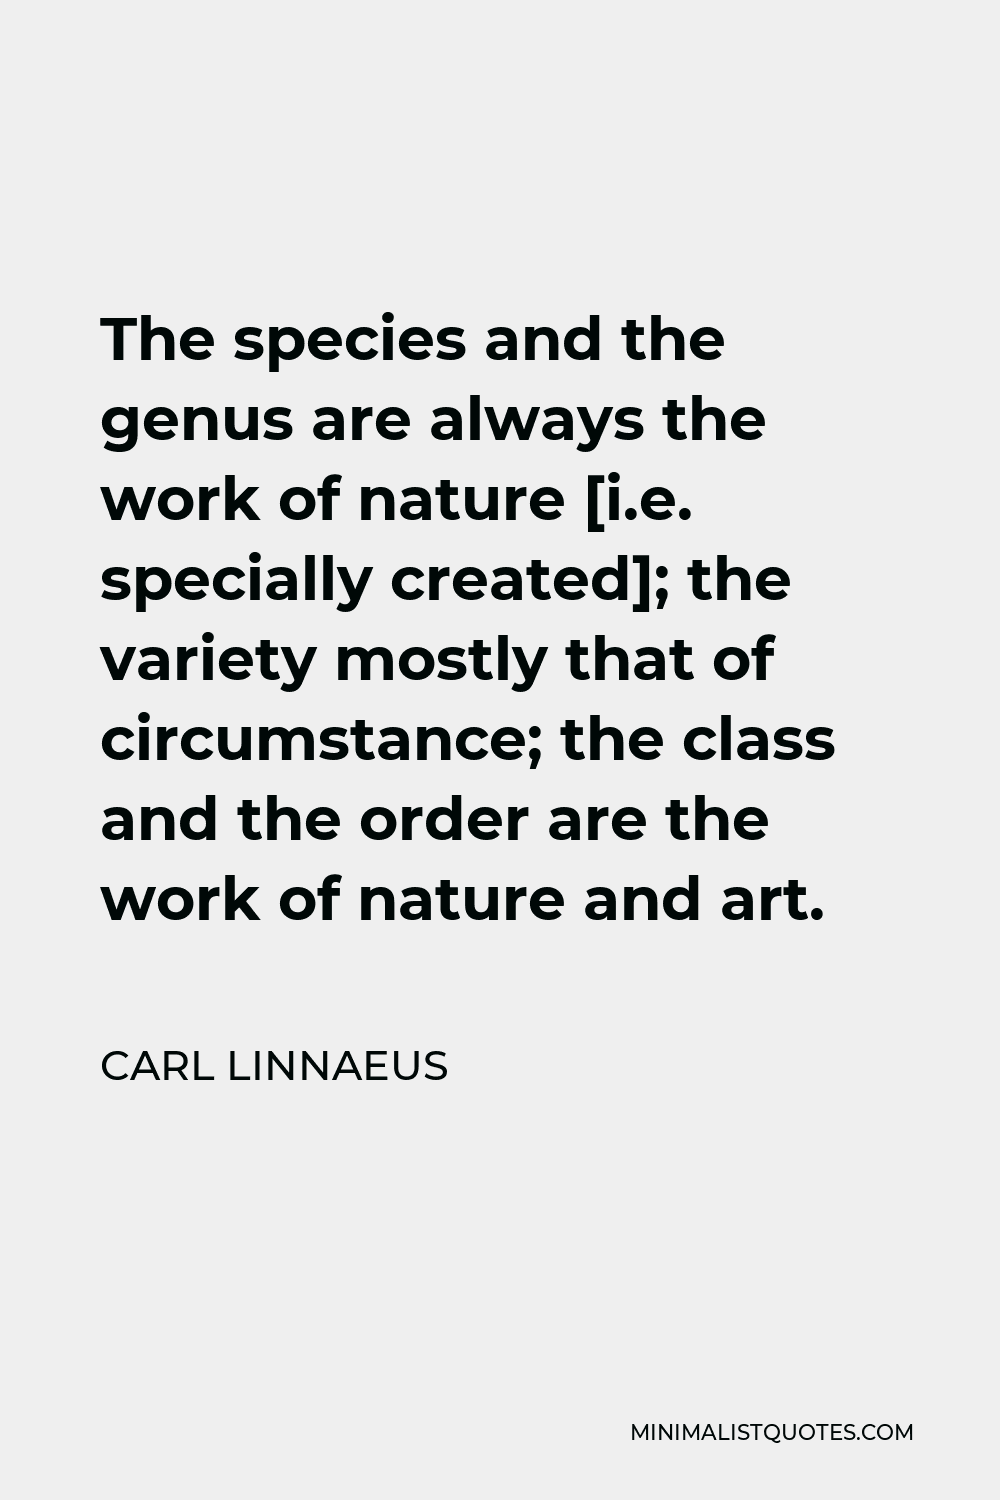 Carl Linnaeus Quote - The species and the genus are always the work of nature [i.e. specially created]; the variety mostly that of circumstance; the class and the order are the work of nature and art.